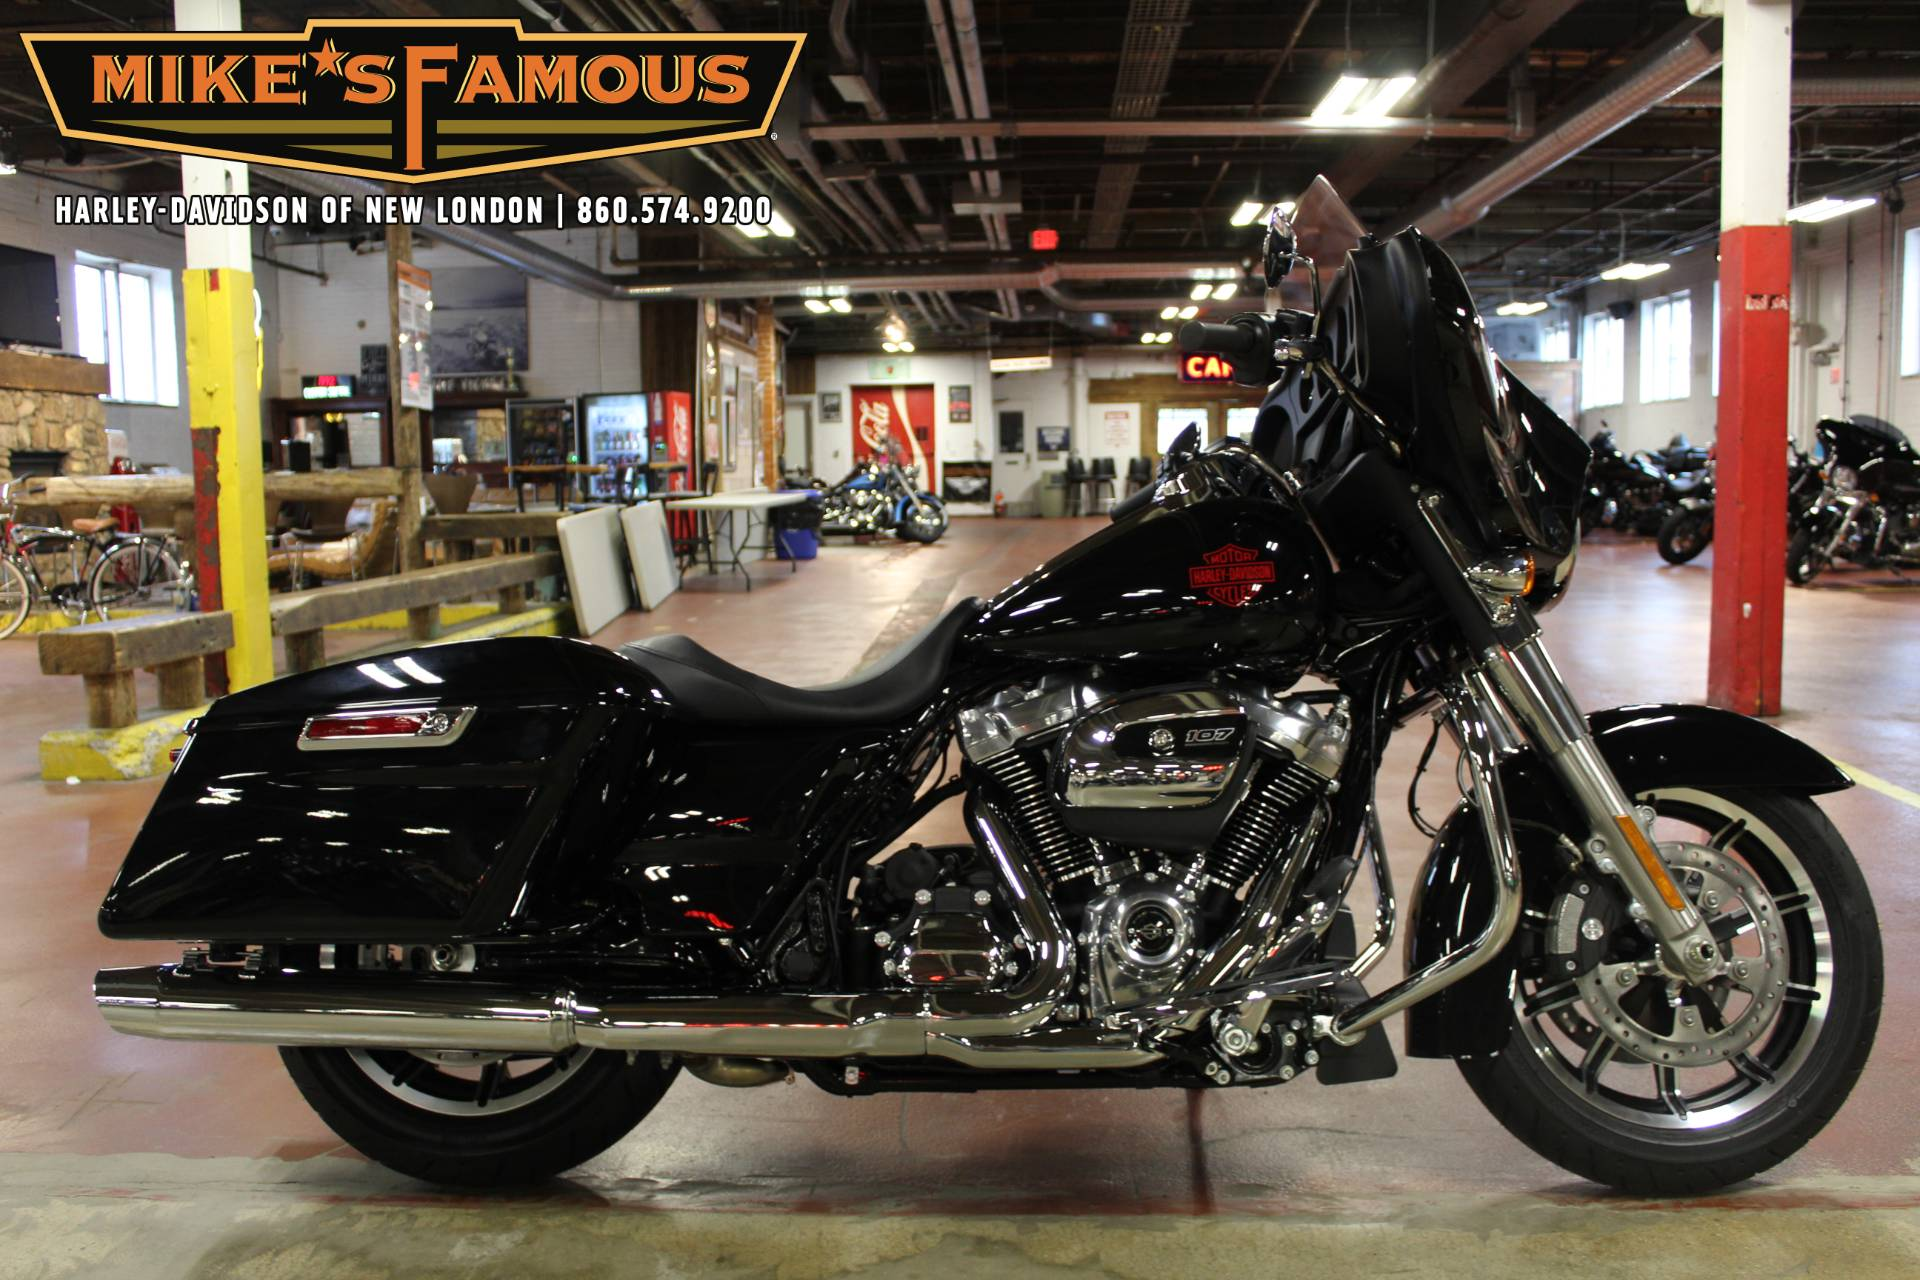 2020 Harley-Davidson Electra Glide® Standard in New London, Connecticut - Photo 1